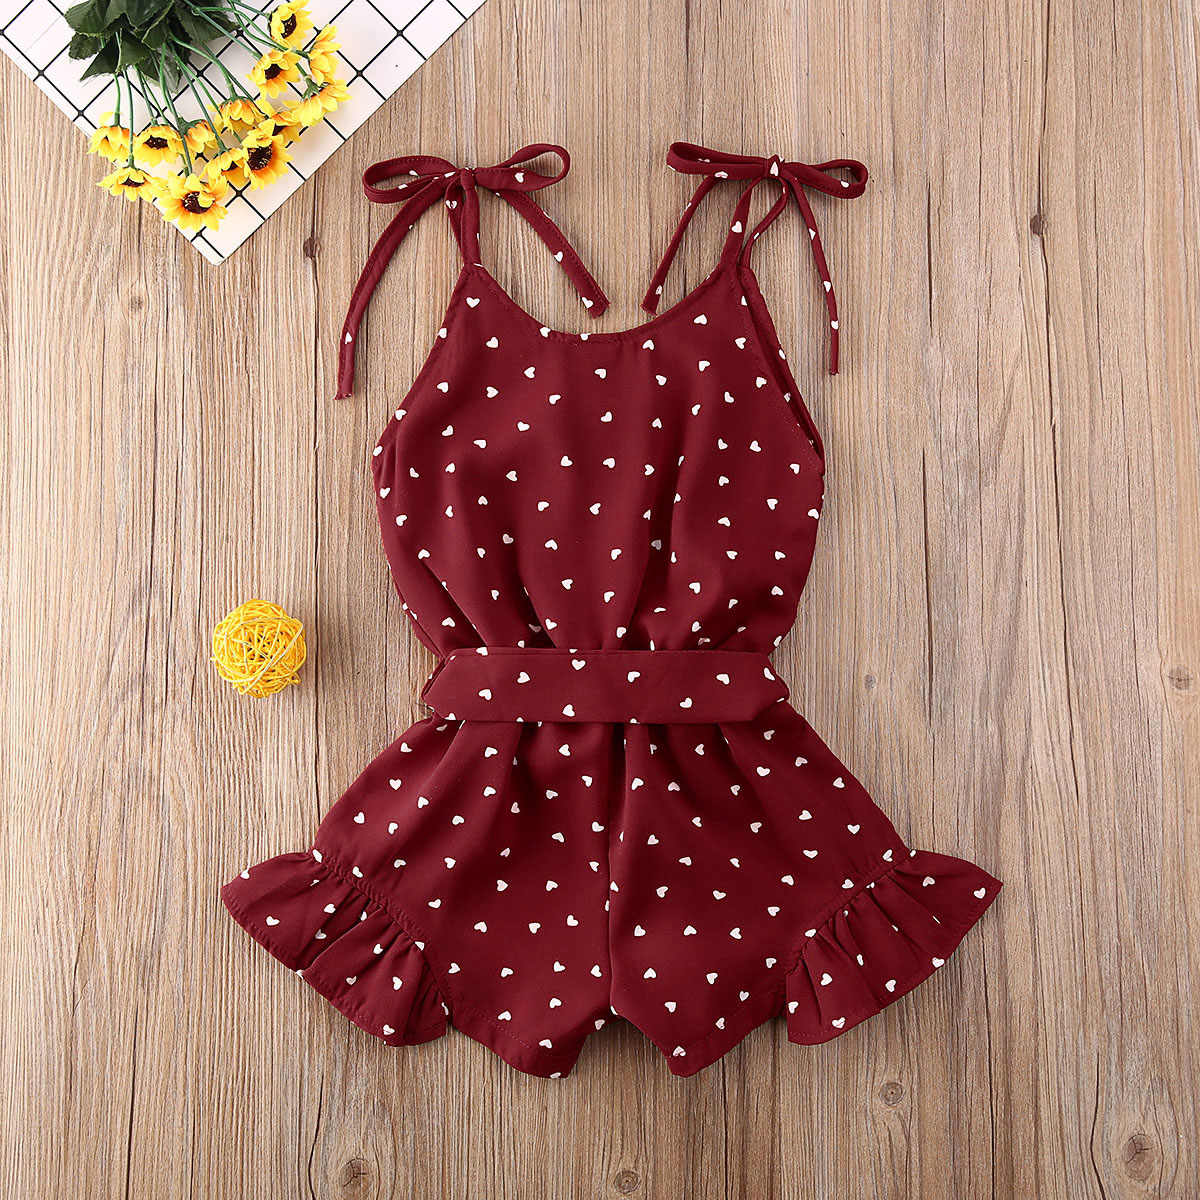 Newborn Baby Girl Summer Sleeveless Romper Jumpsuit Heart Print Outfit Clothes